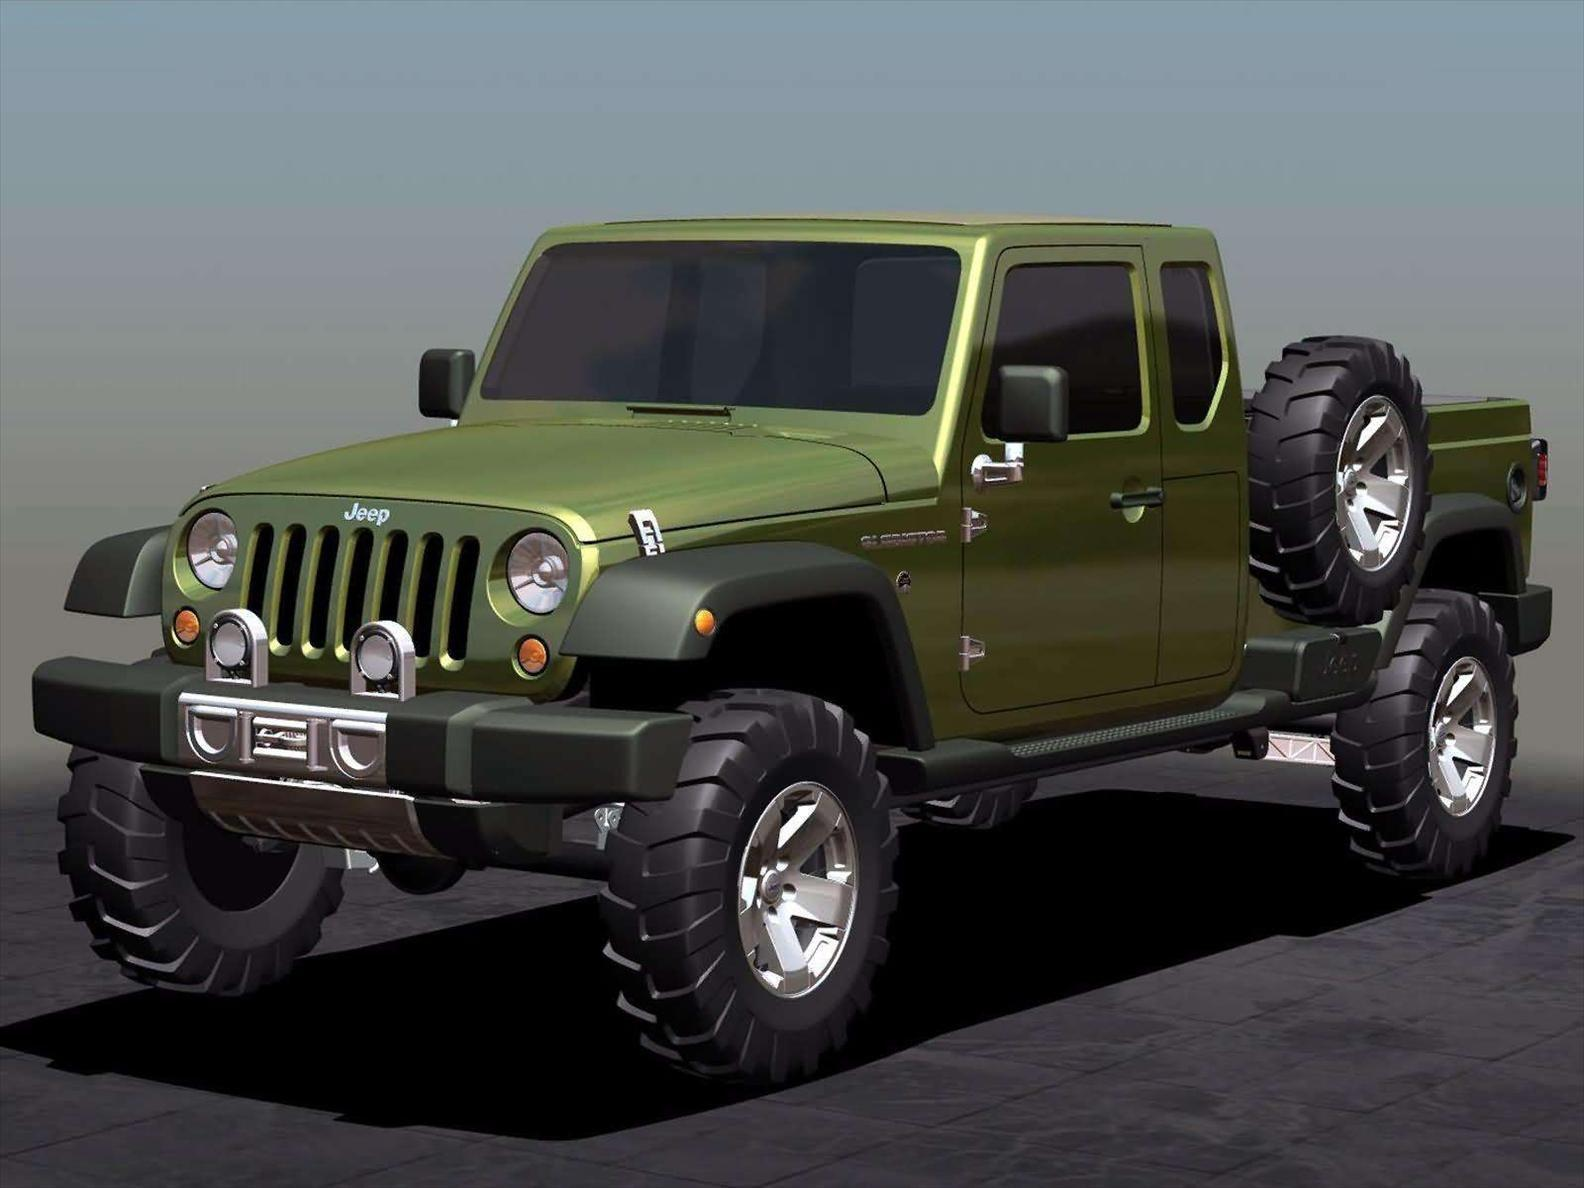 Jeep-Gladiator-Concept-2005-Front-Sideview